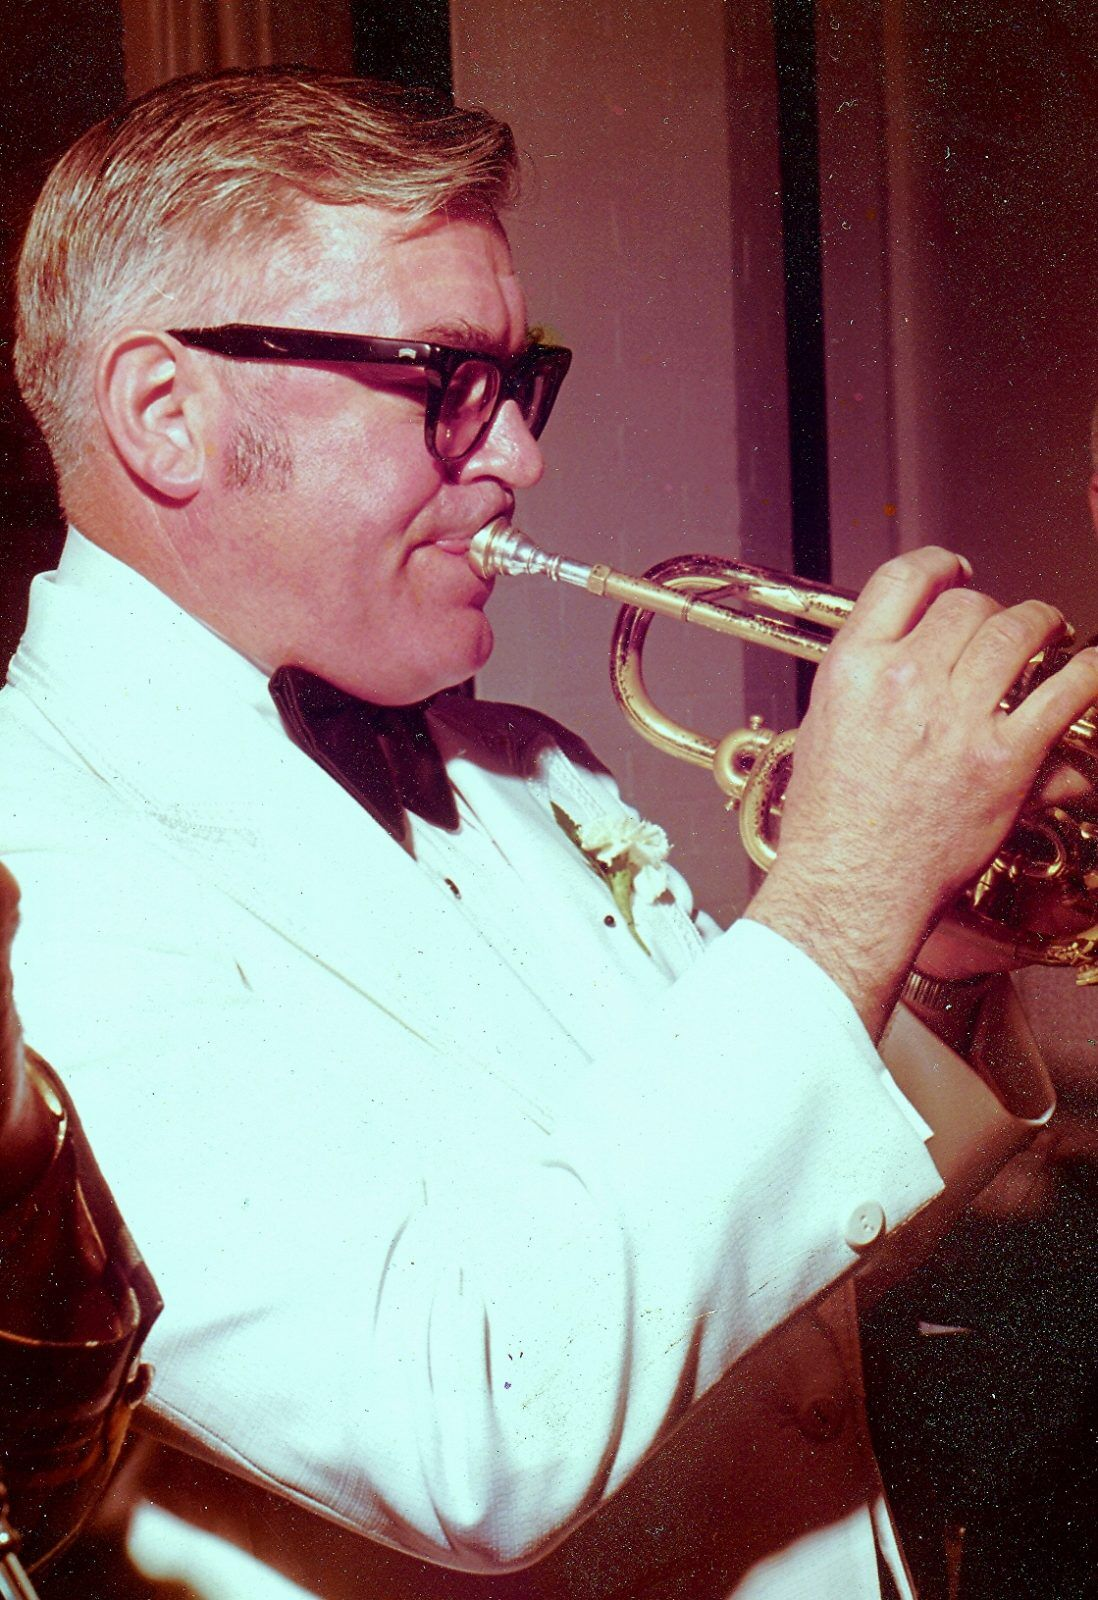 Dick Ames with horn